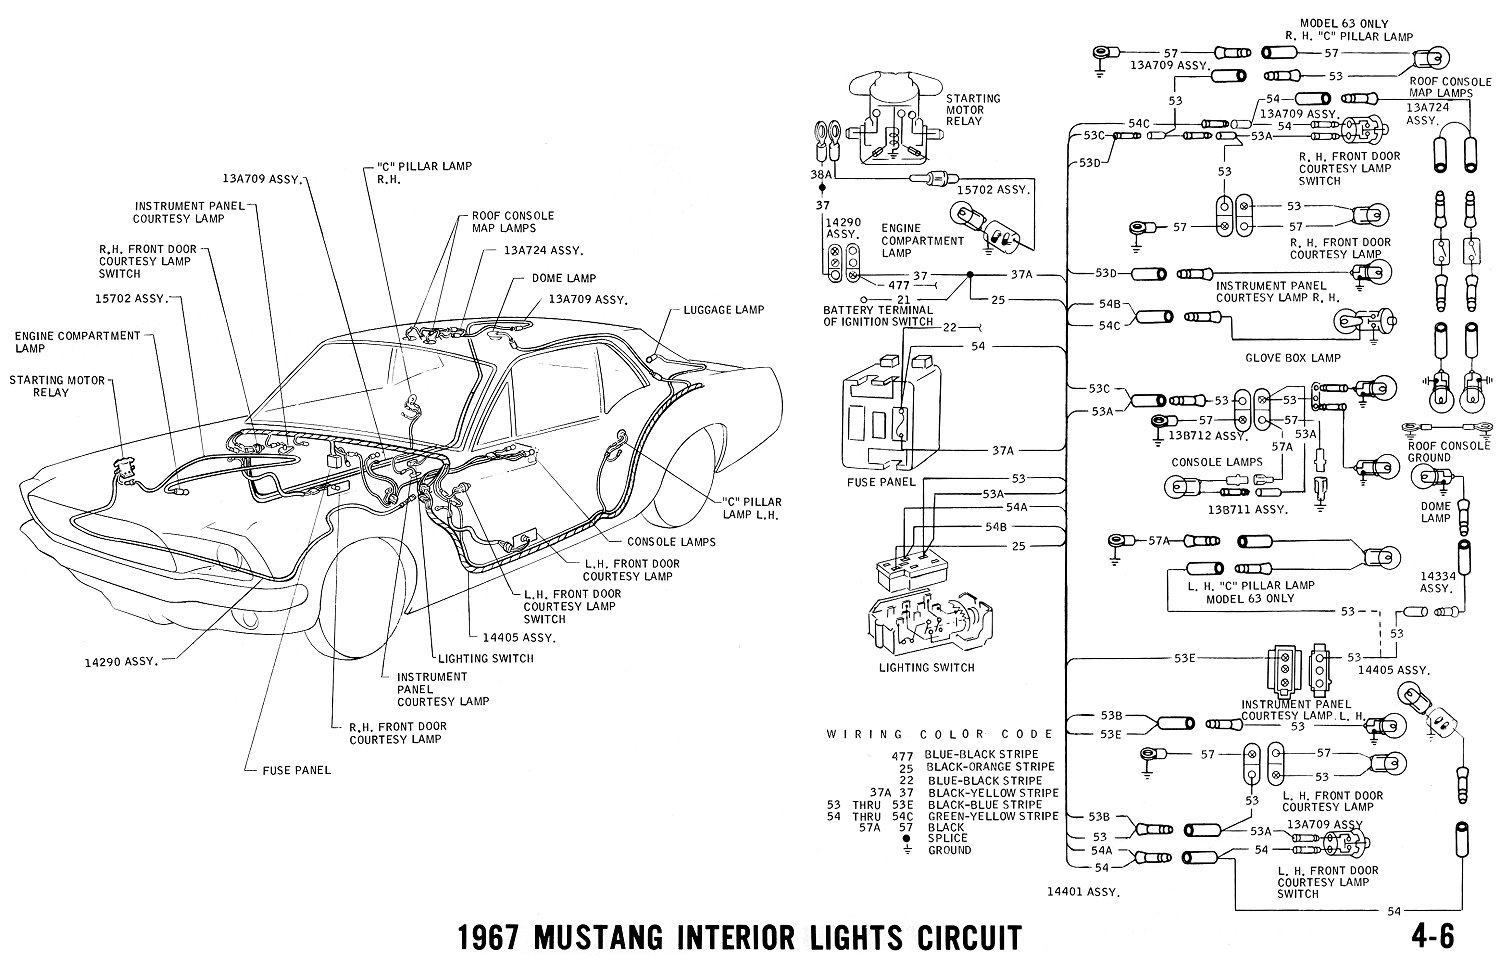 1968 Mustang Ignition Wire Harness Wiring Diagram And Ebooks Coil 1967 Vacuum Diagrams Average Joe Restoration Rh Averagejoerestoration Com Cylinder Distributor